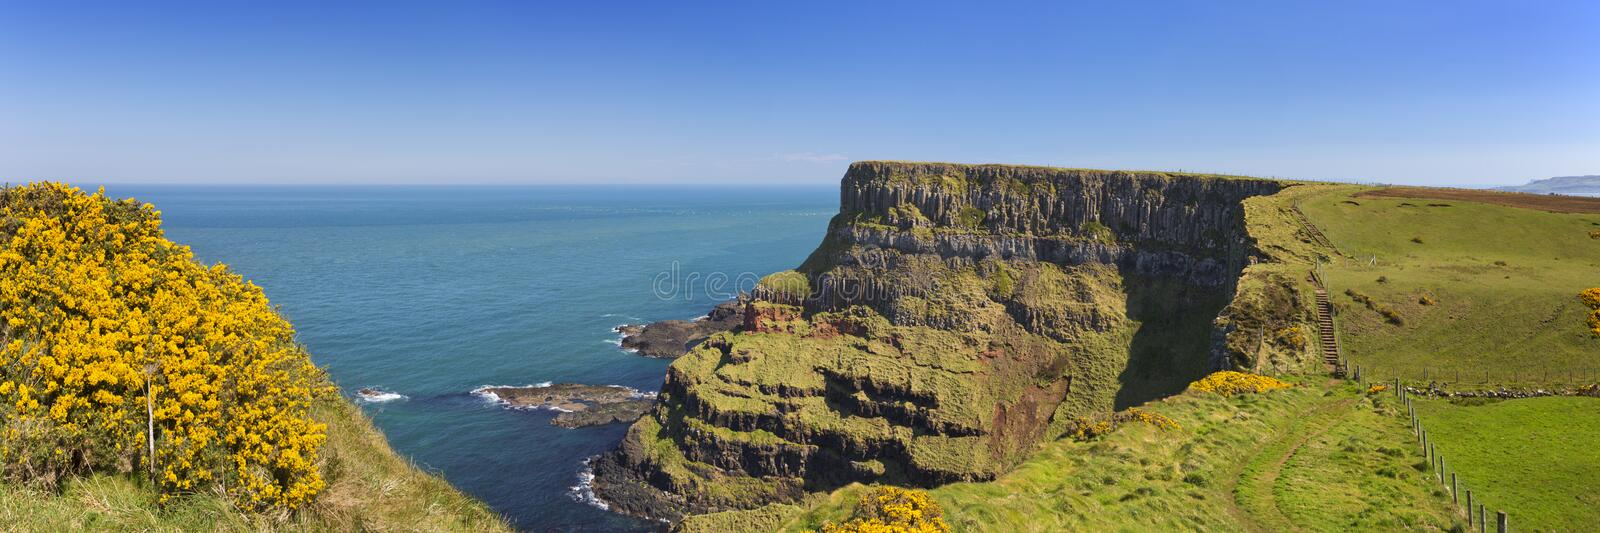 Cliffs along the Causeway Coastal Way in Northern Ireland. Cliffs along the Causeway Coastal Way on the coast of Northern Ireland on a bright and sunny day stock photography